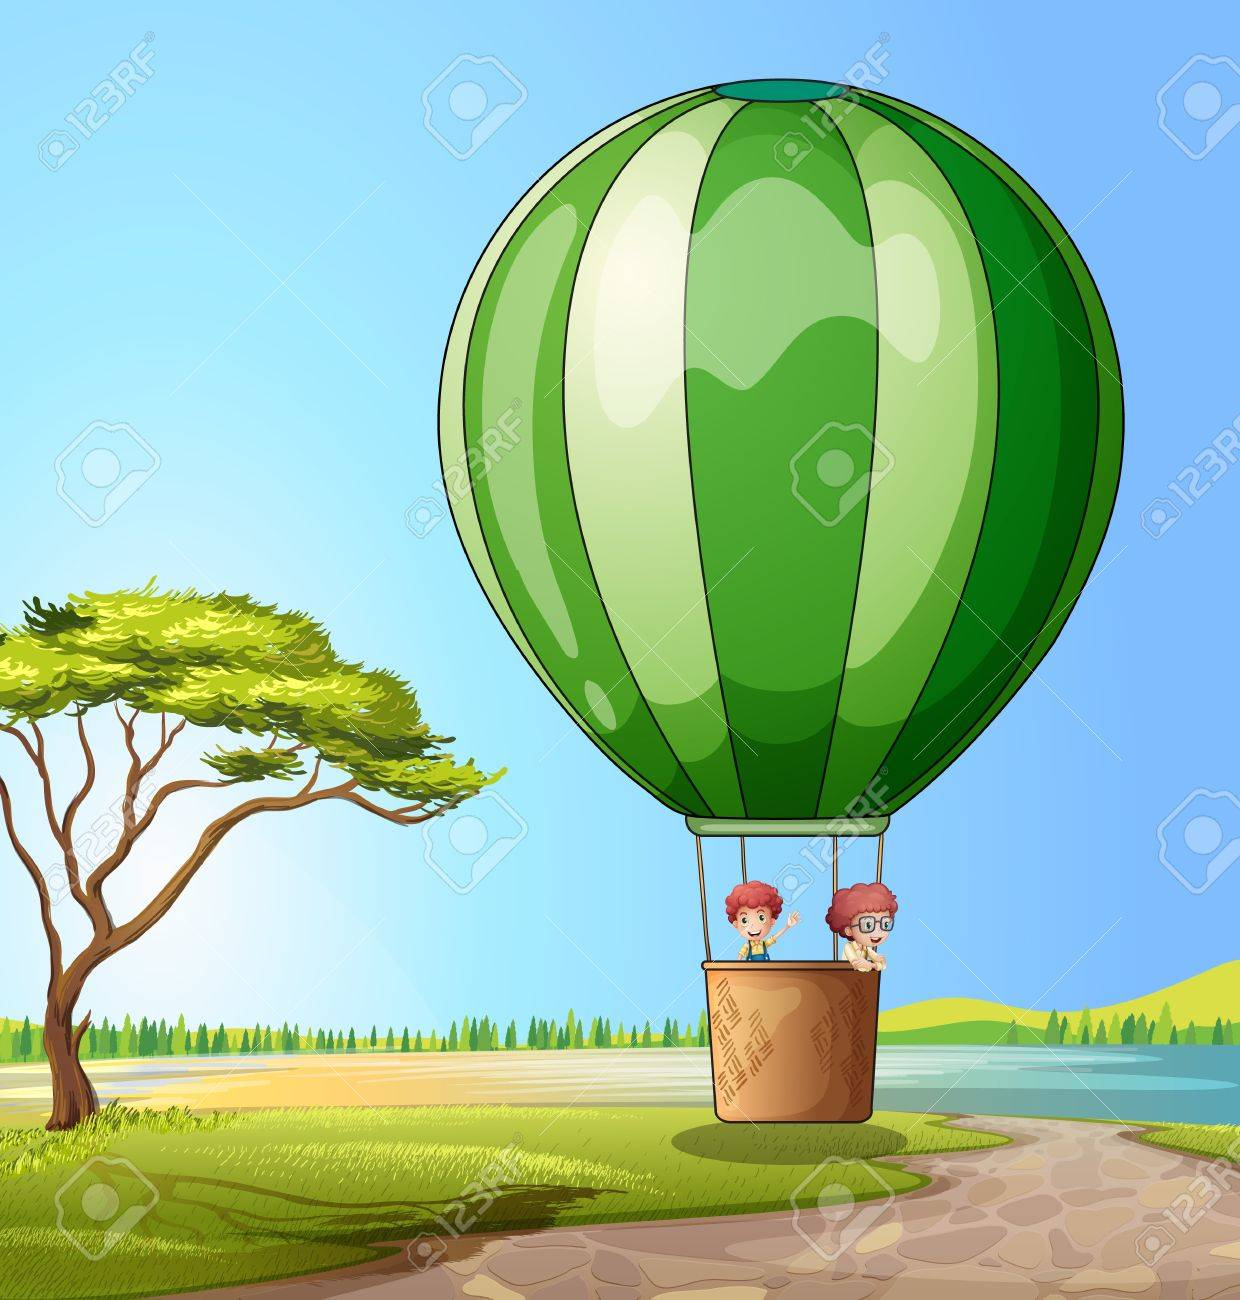 Illustration of a hot air balloon with two boys Stock Vector - 17358286